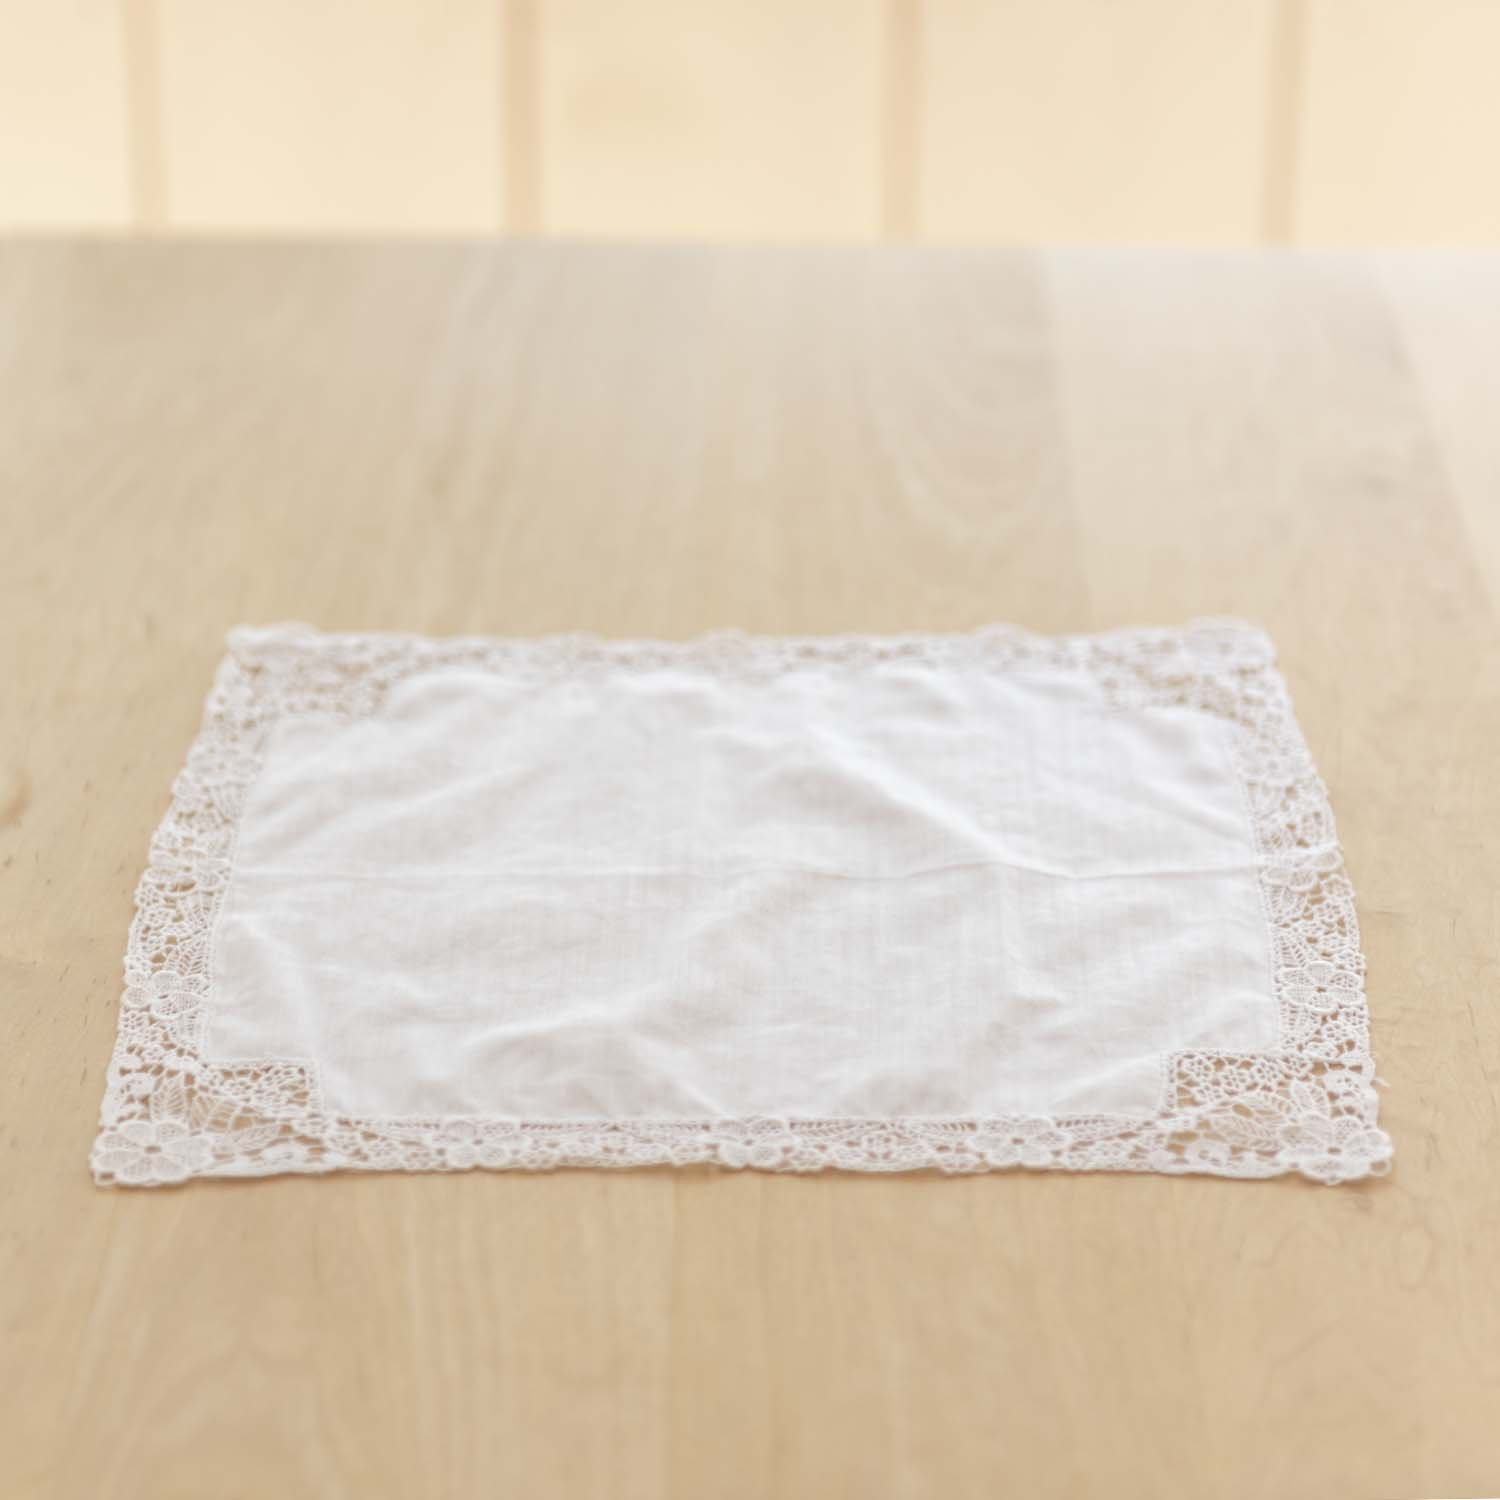 <img class='new_mark_img1' src='https://img.shop-pro.jp/img/new/icons3.gif' style='border:none;display:inline;margin:0px;padding:0px;width:auto;' />Vintage Handkerchief A